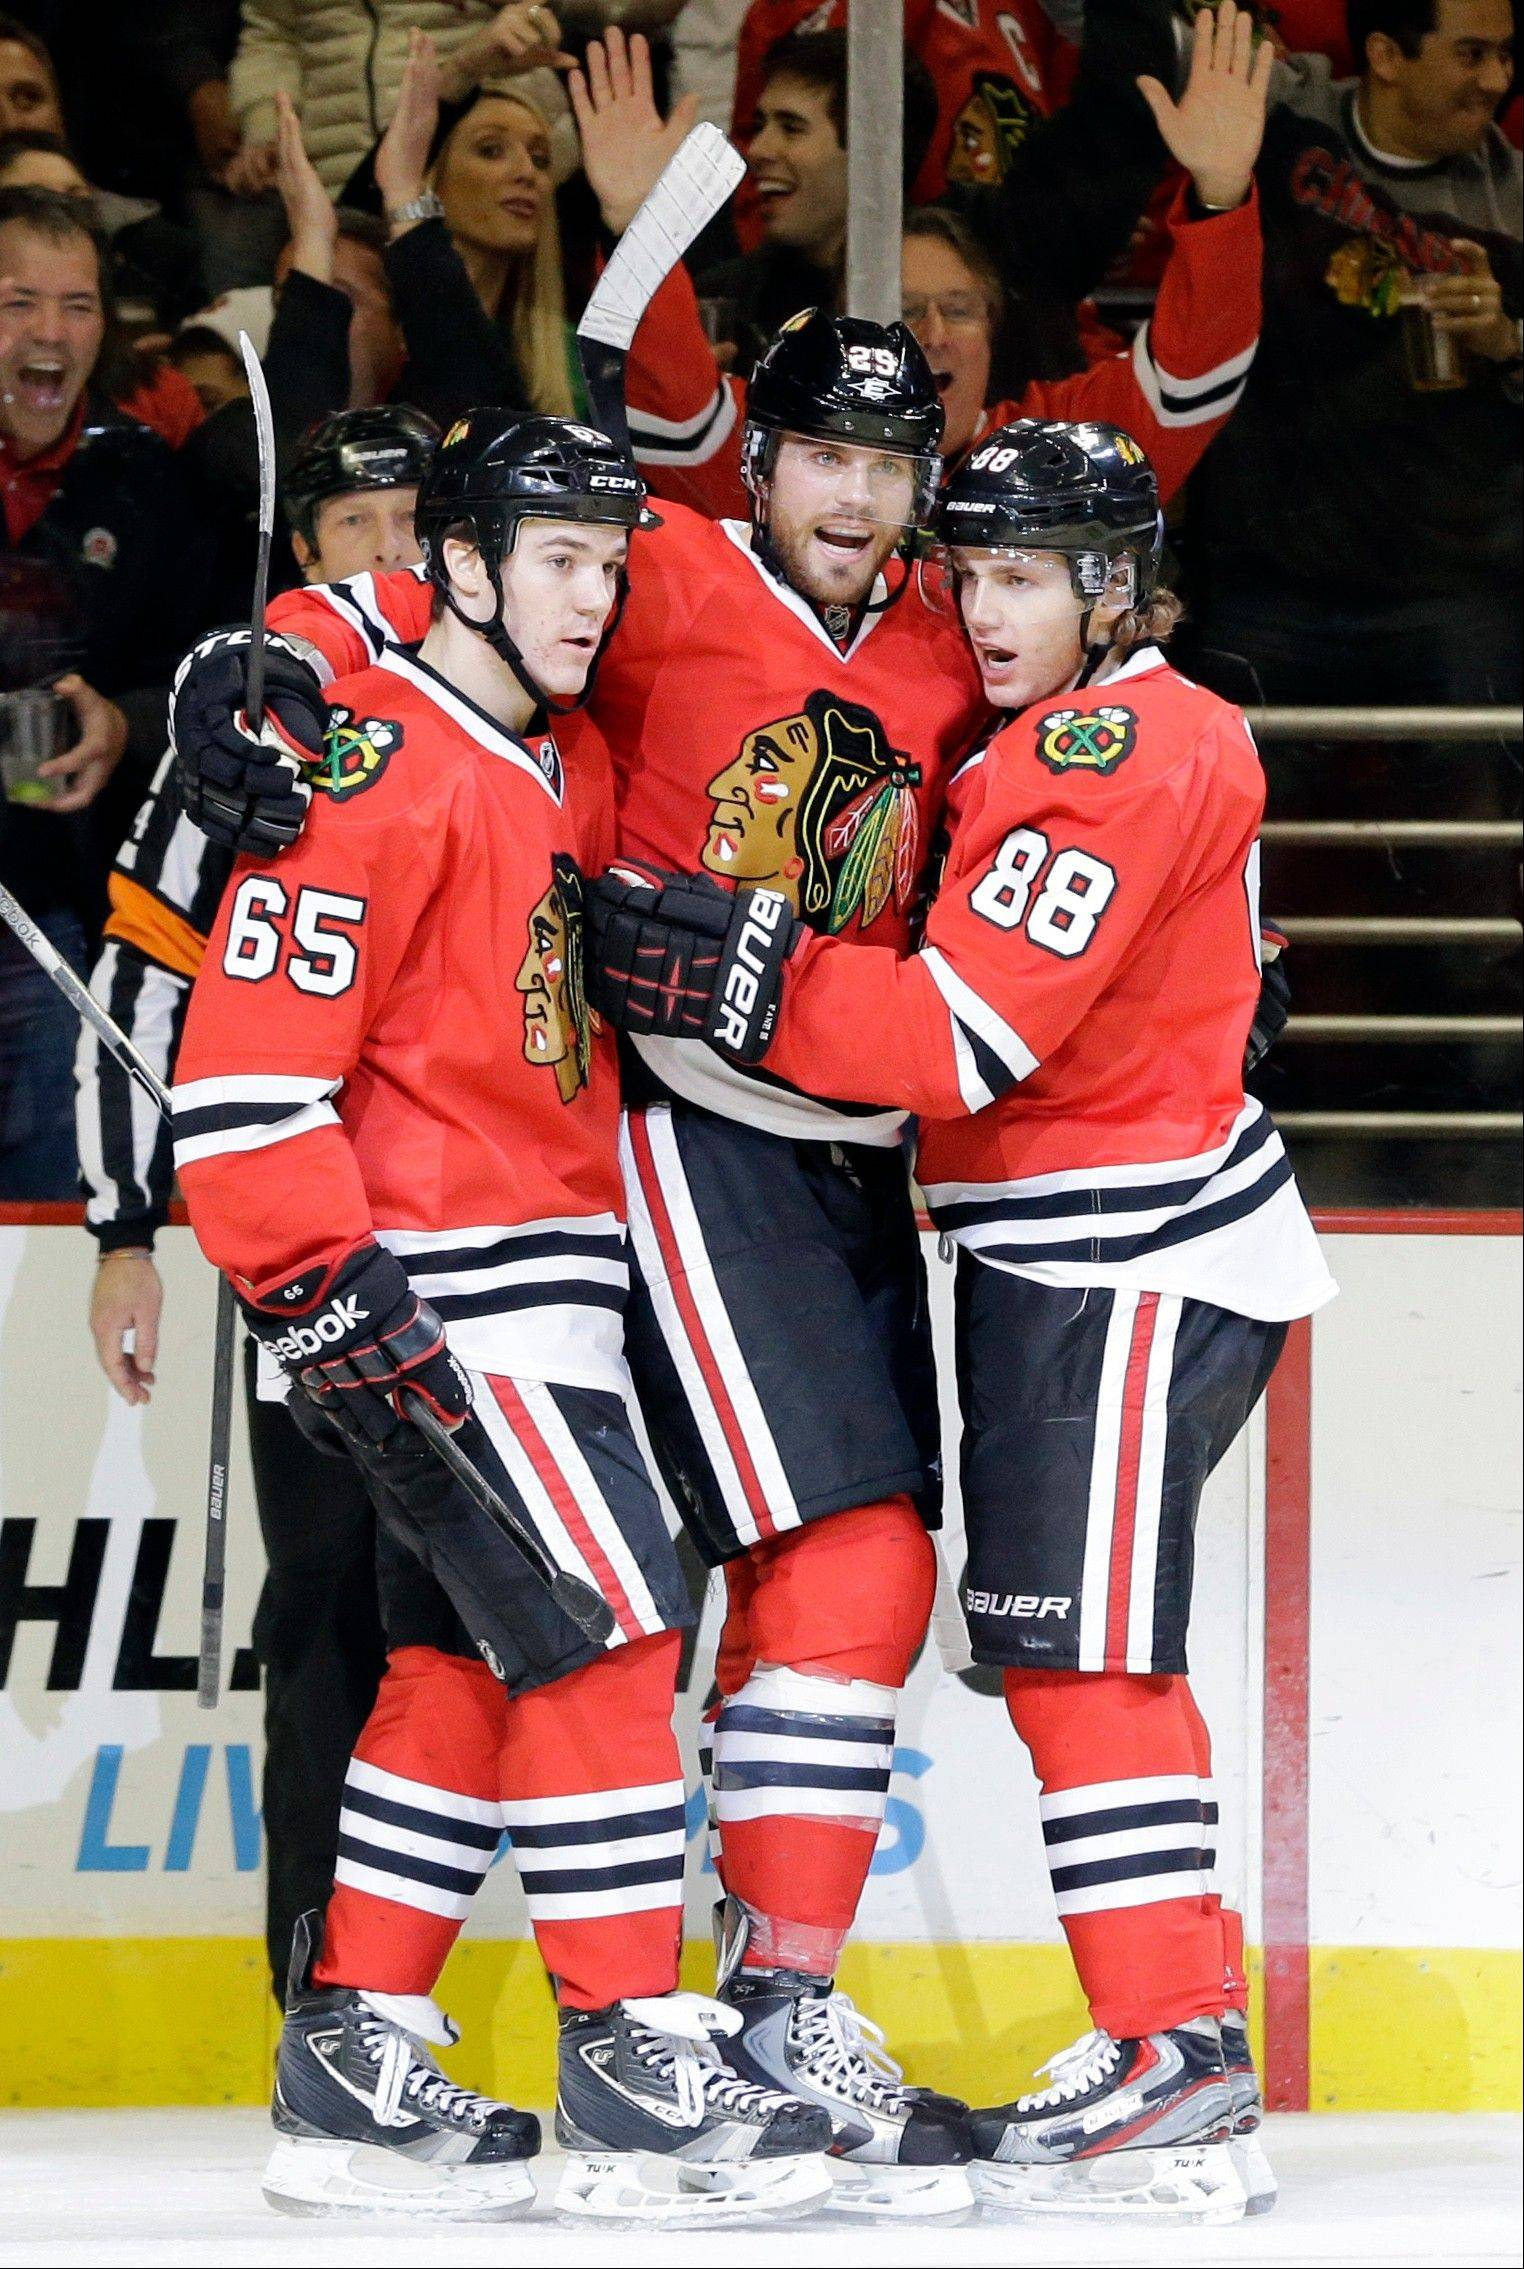 Blackhawks' third line blends skill, grit